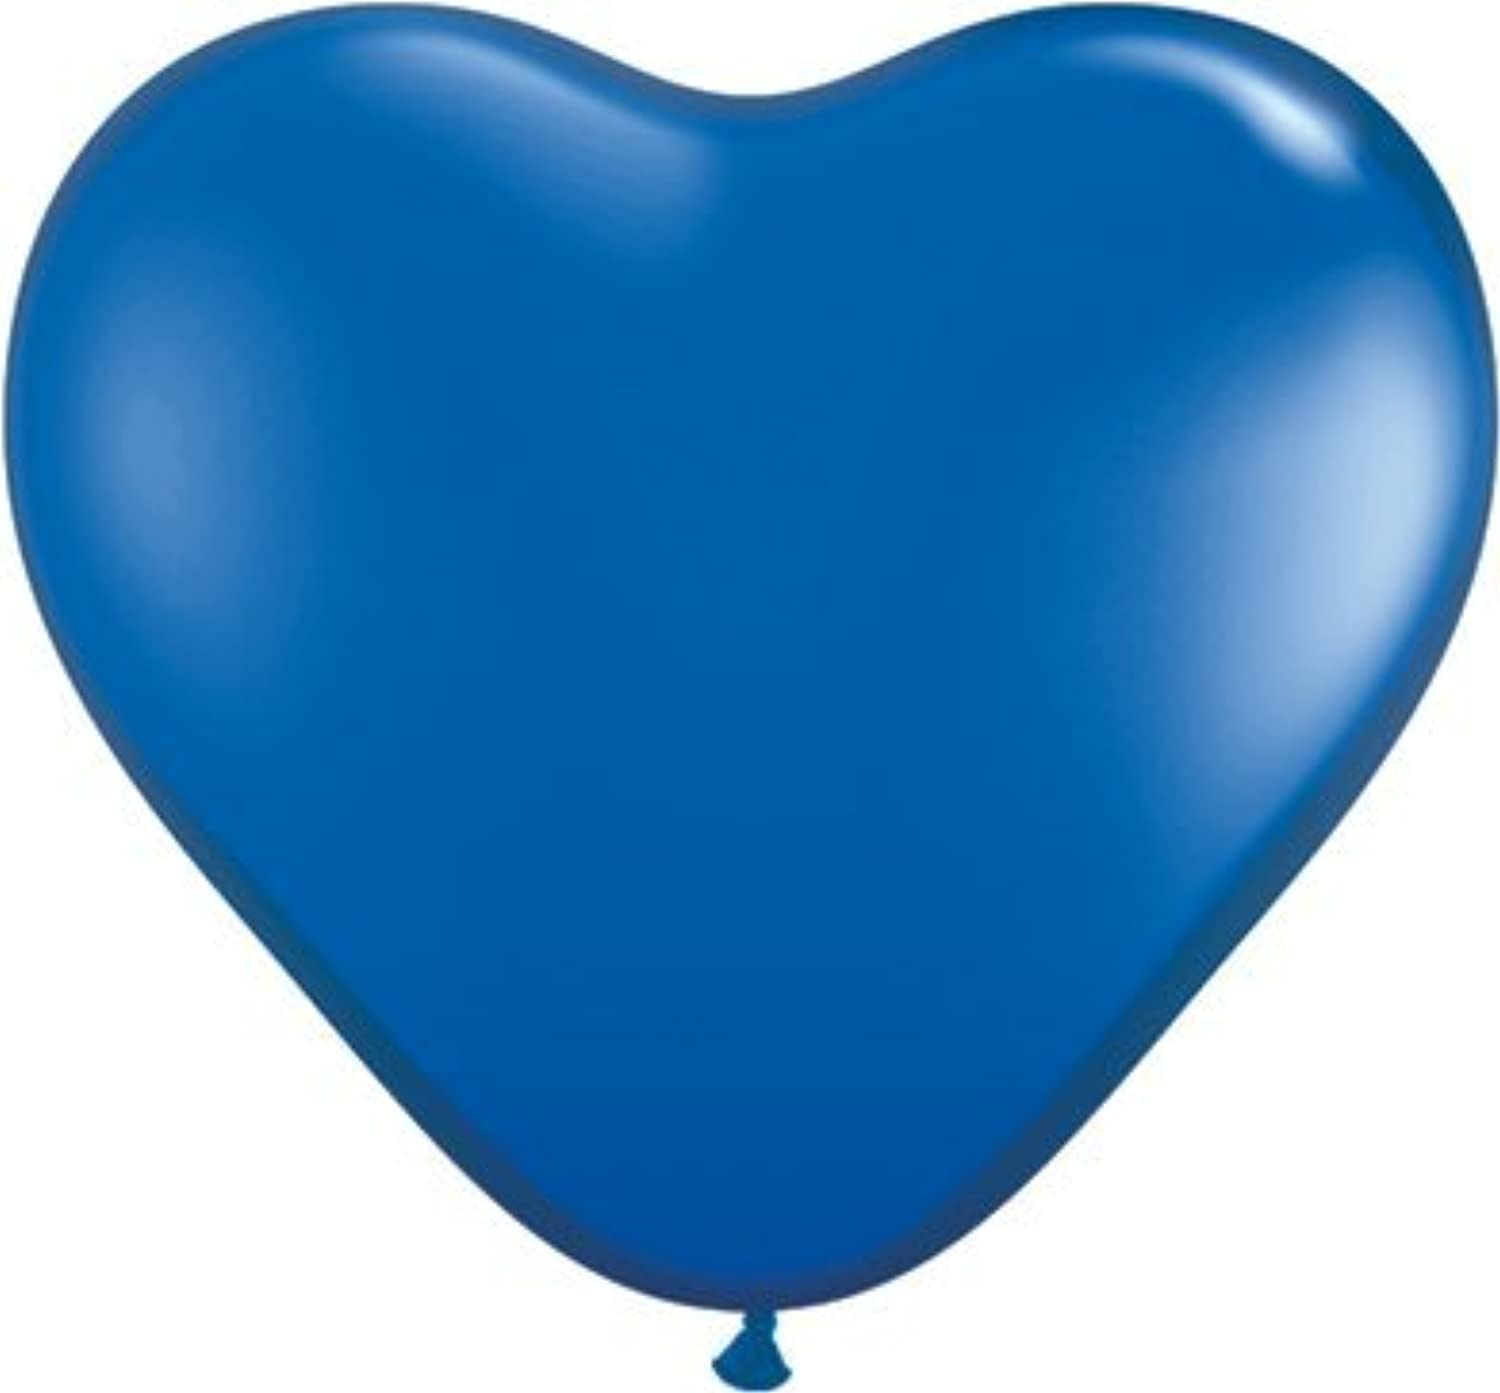 Jewel Sapphire bluee 6 Latex Hearts Qualatex Balloons x 25 by Qualatex